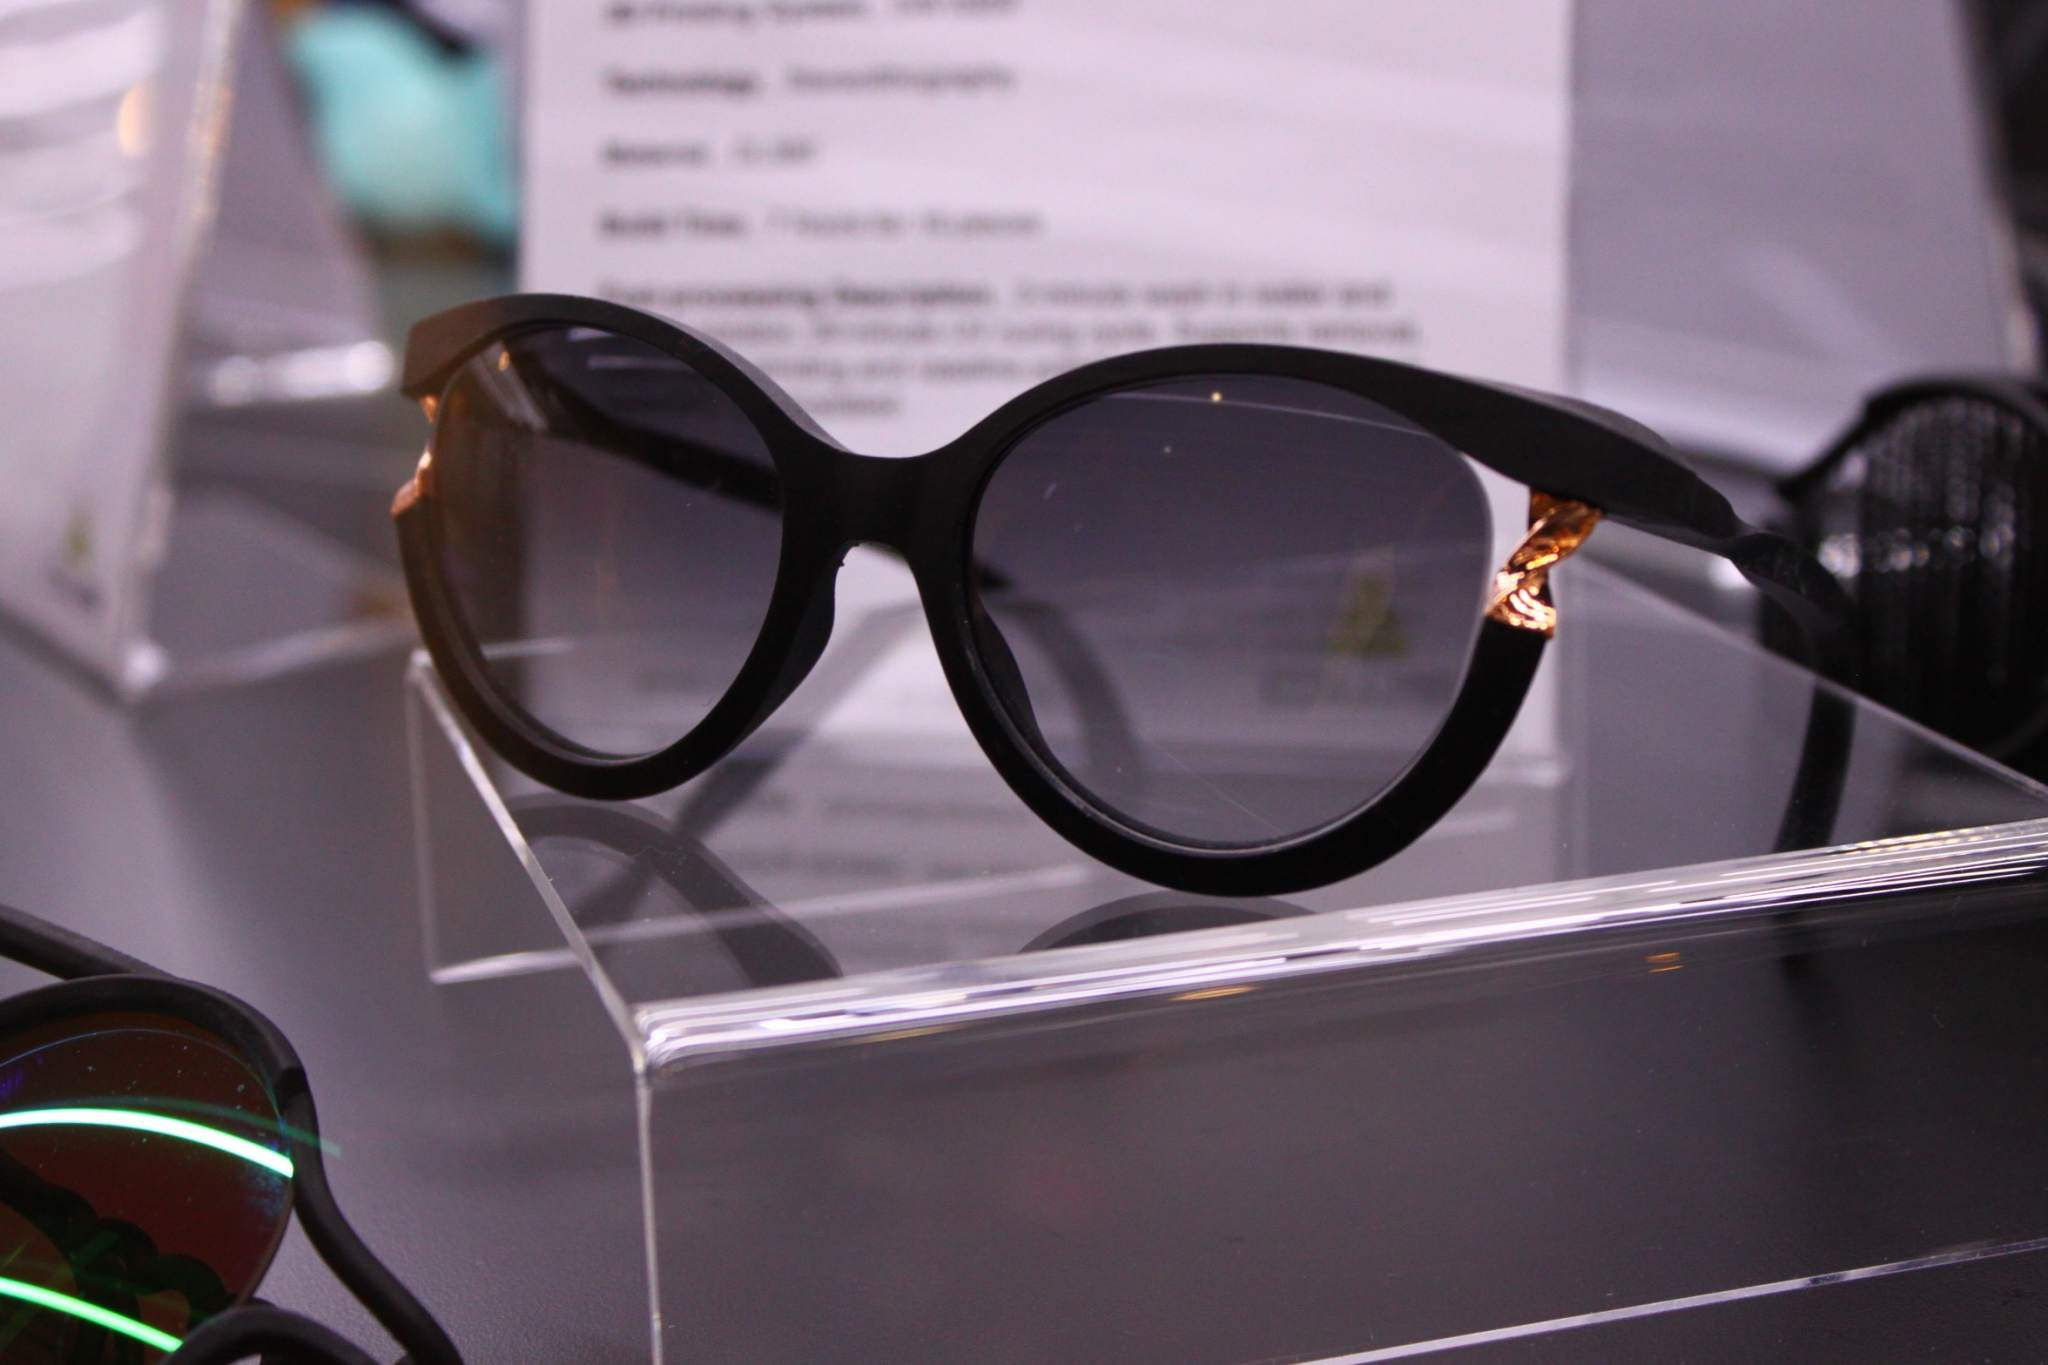 Alice Barki's 3D printed eyewear. Photo via DWS.